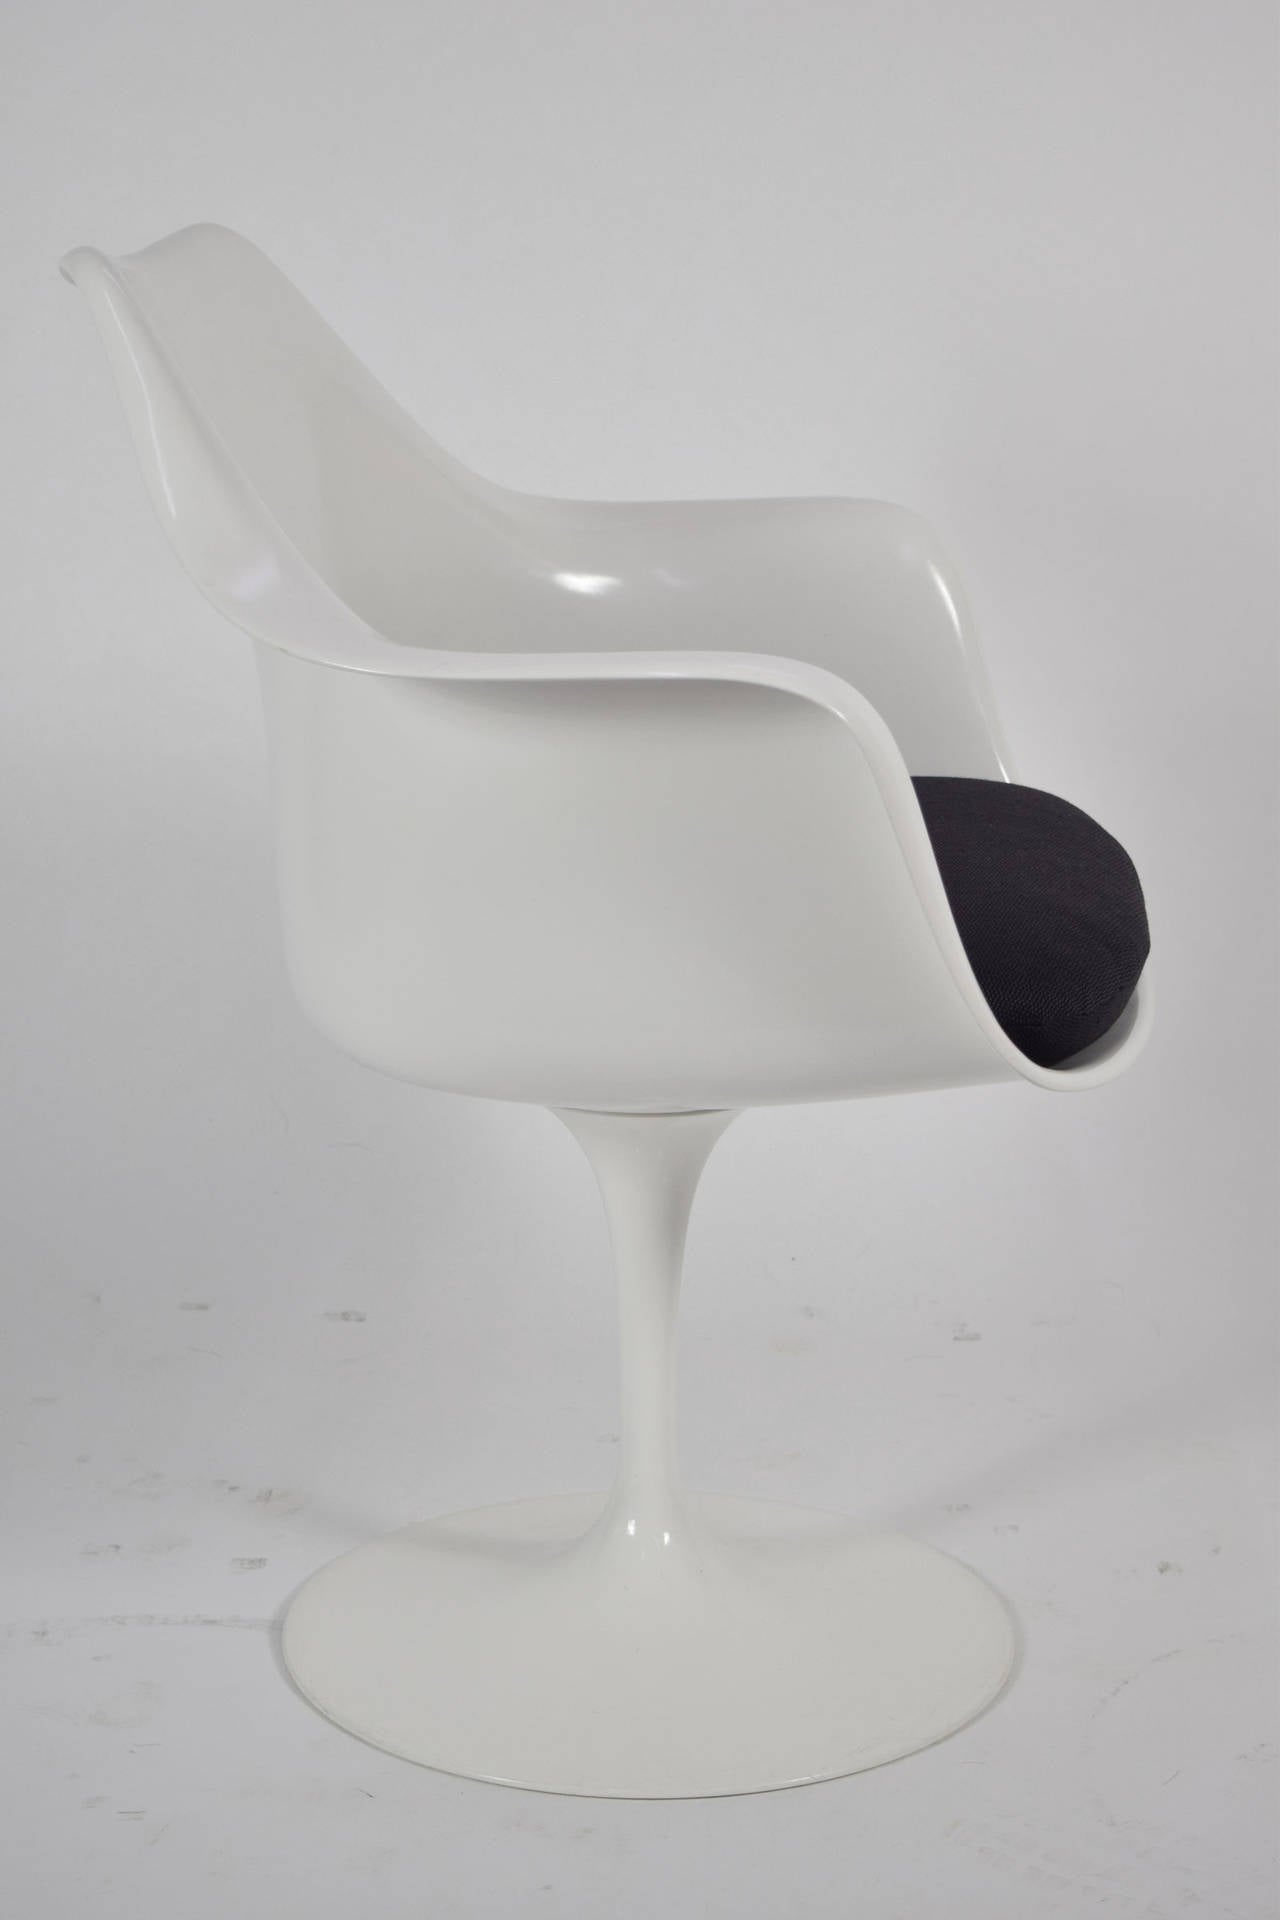 Set of four eero saarinen tulip arm chairs by knoll at 1stdibs for Eero saarinen tulip armchair